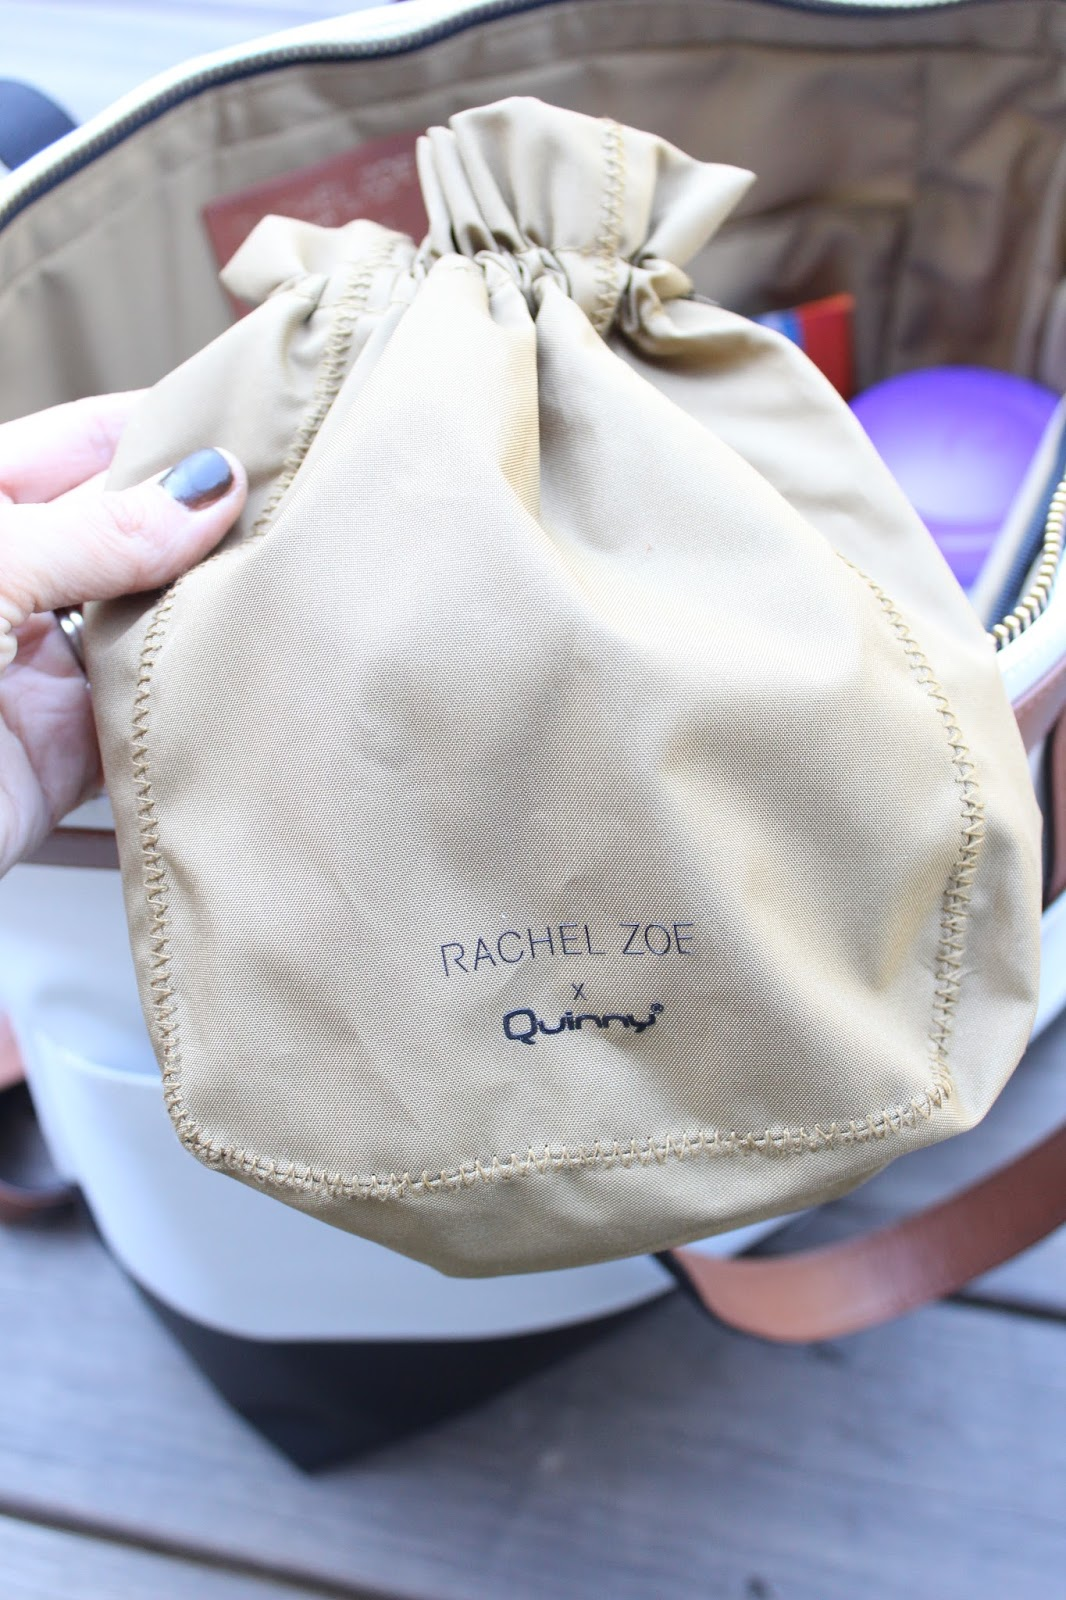 Rachel Zoe Quinny Diaper Bag review